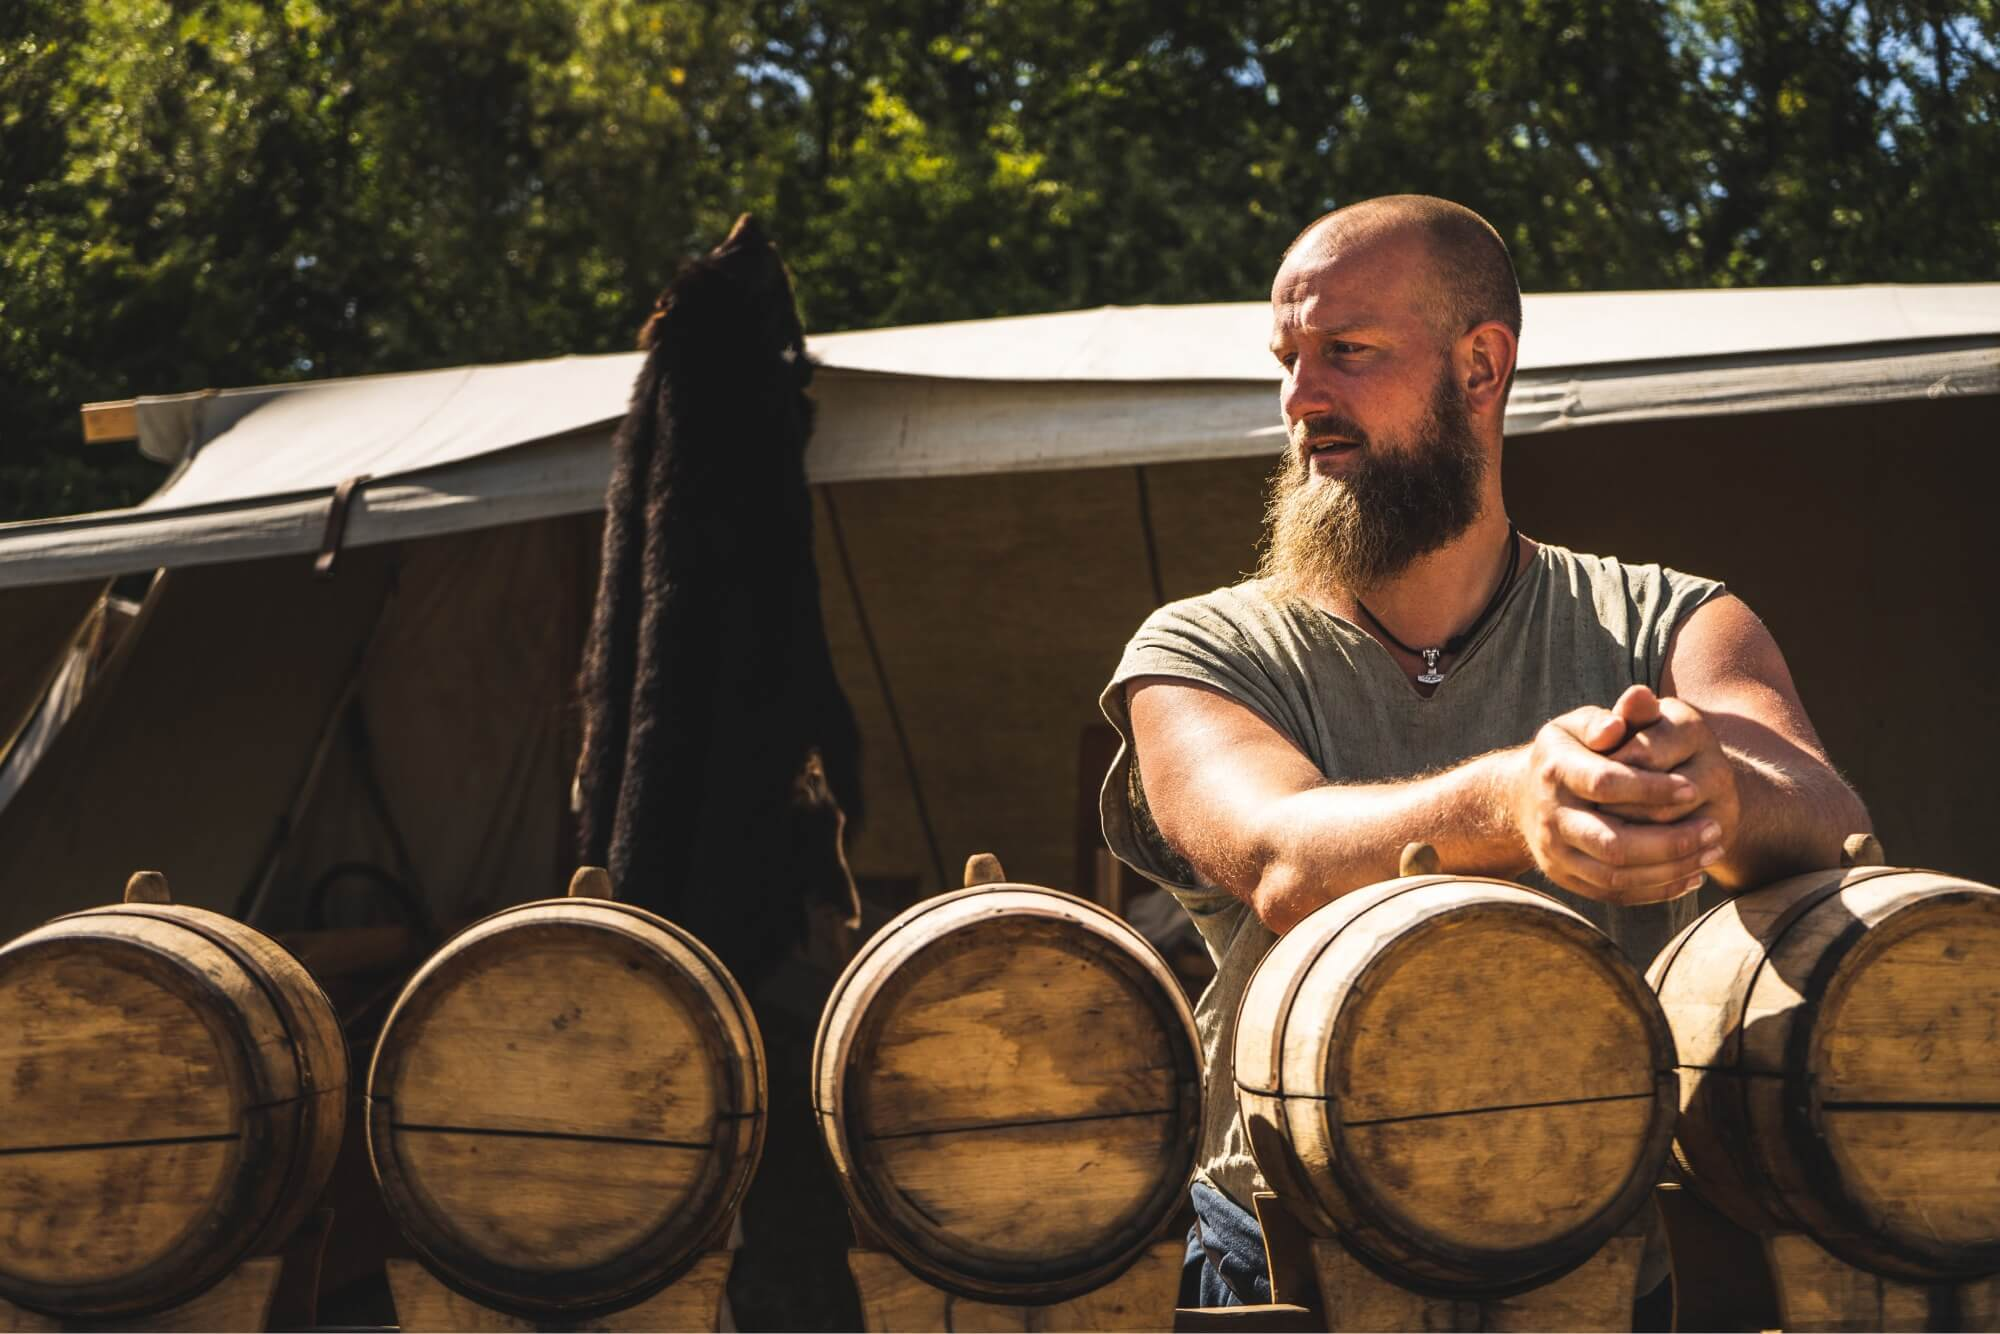 A photo of a man leaning on whiskey barrels.